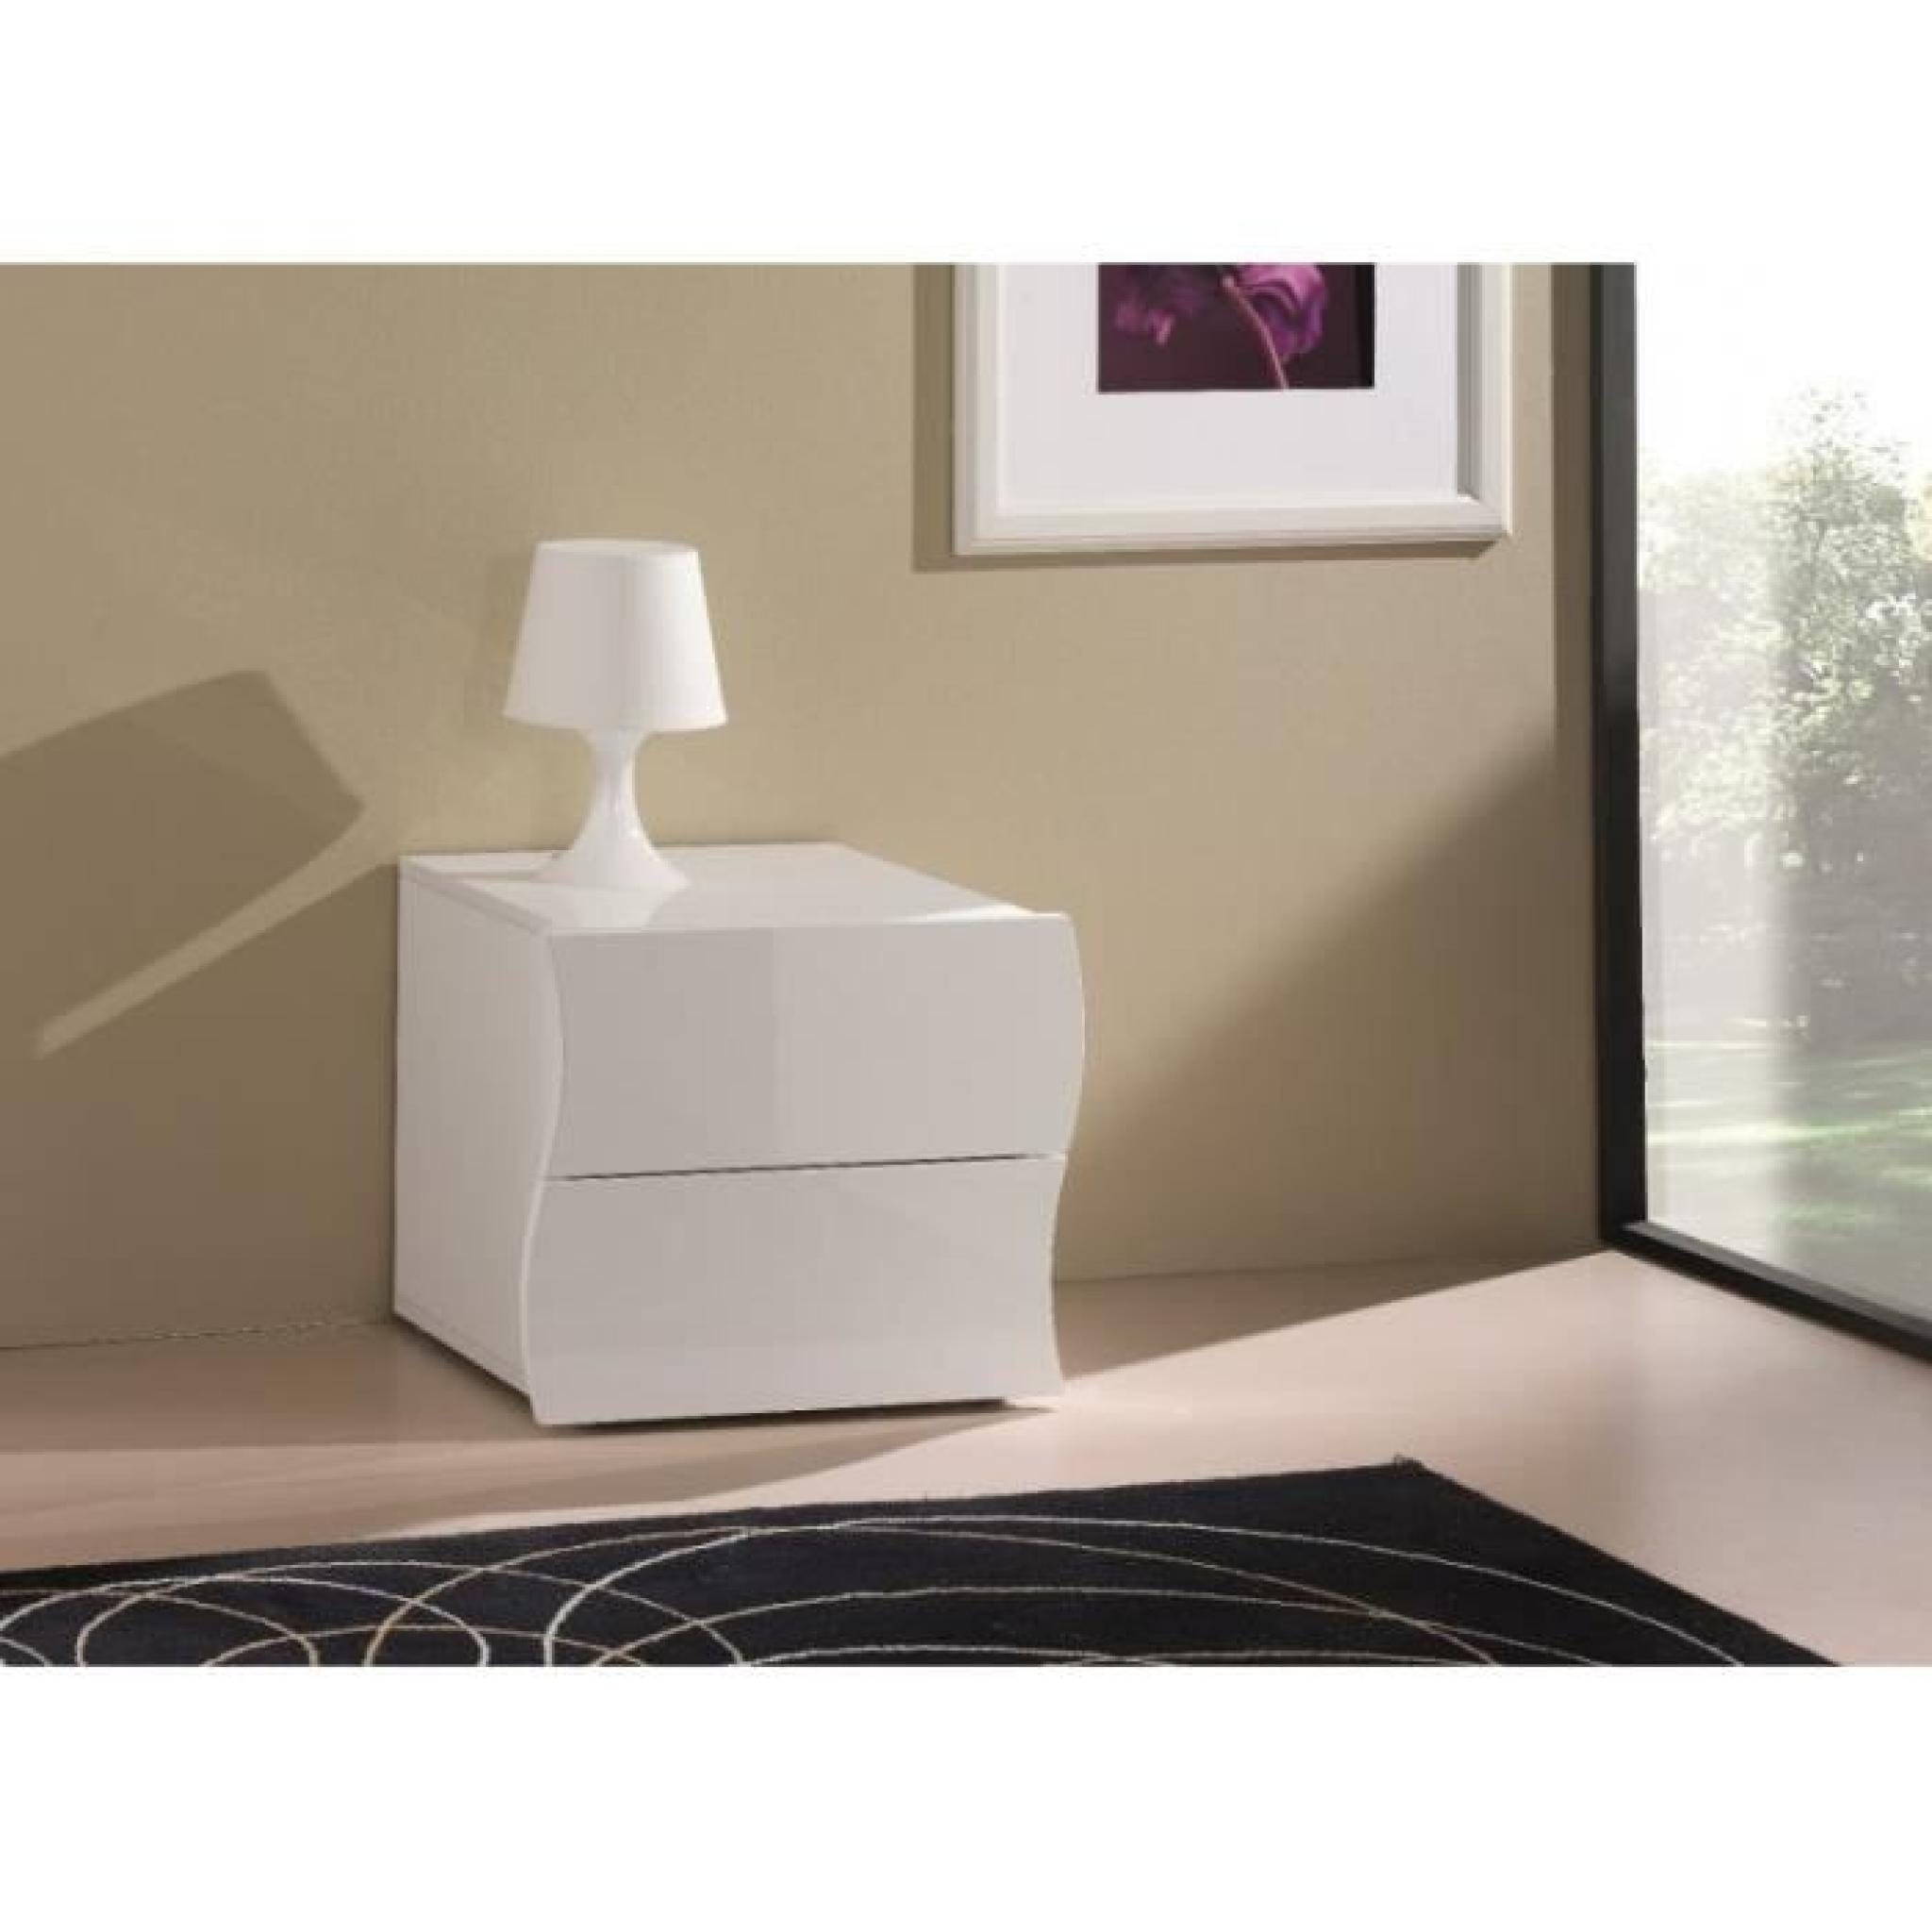 chevet 2 tiroirs onda nanetto blanc brillant achat vente. Black Bedroom Furniture Sets. Home Design Ideas